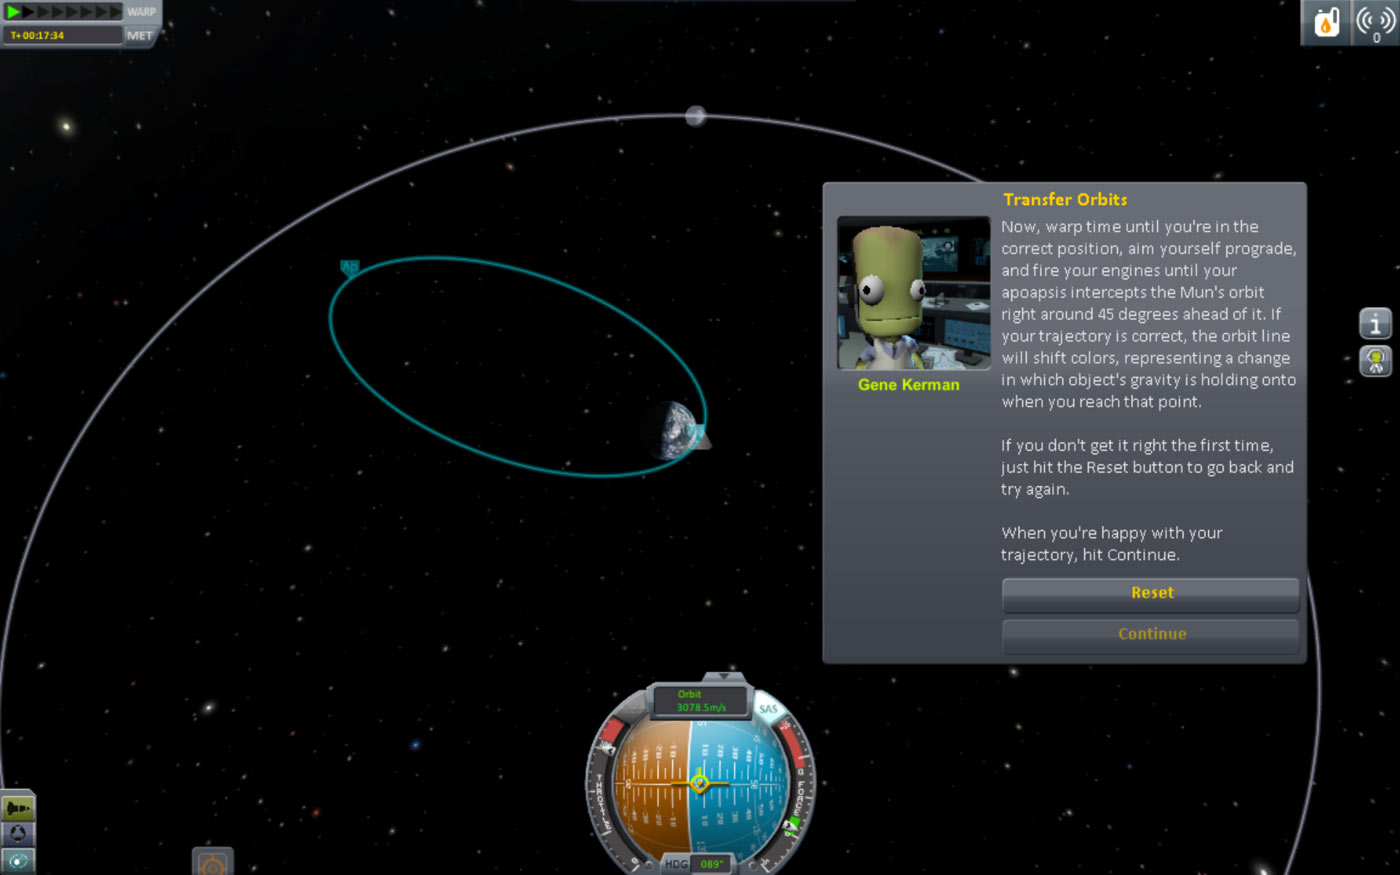 The tutorial on getting to the Mun teaches you about transfer orbits.